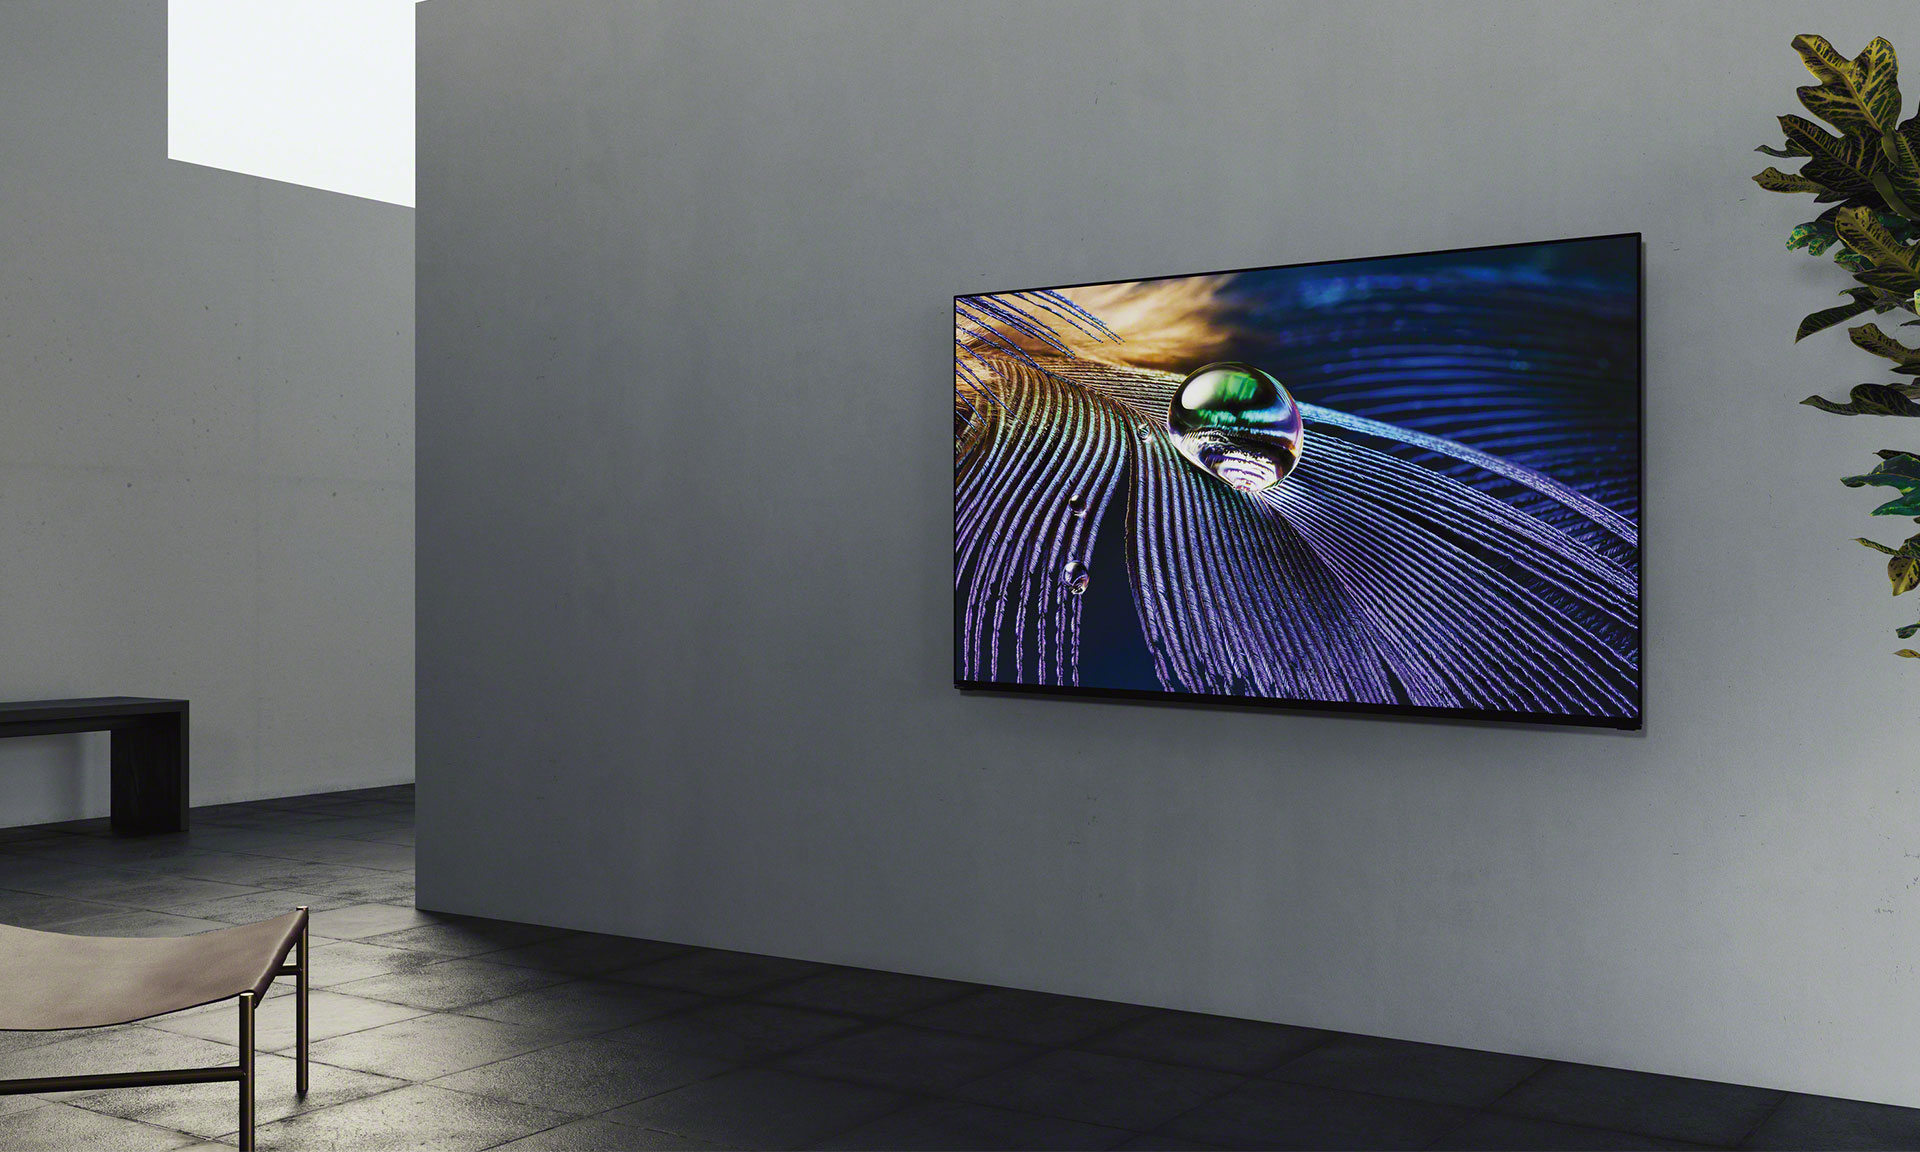 Sony XR-55A90J 4K OLED TV mounted on a wall